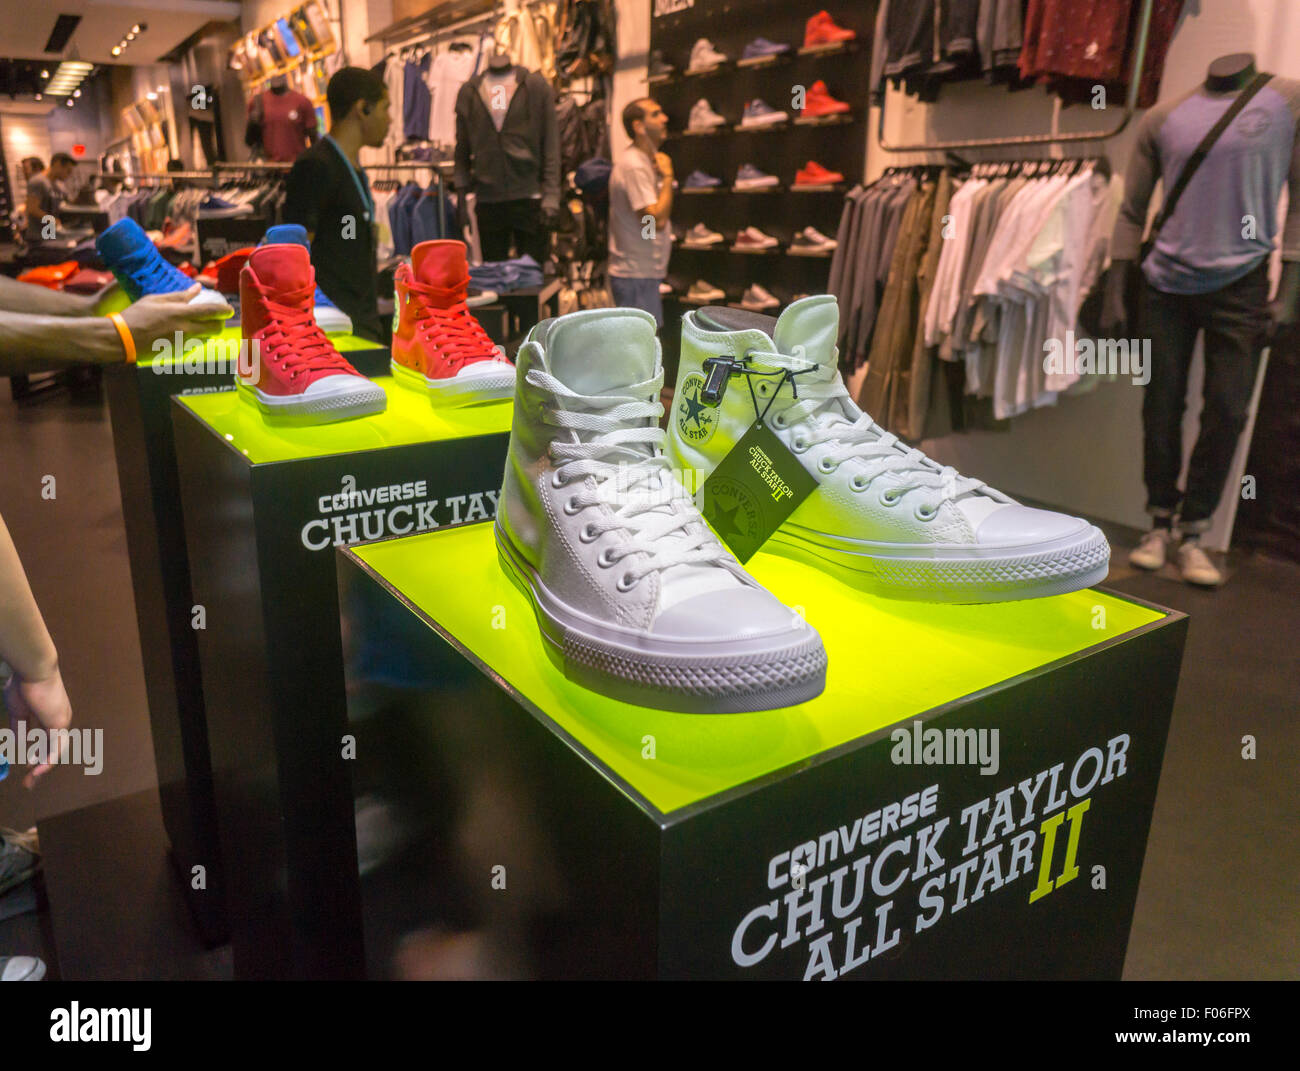 converse all star store london